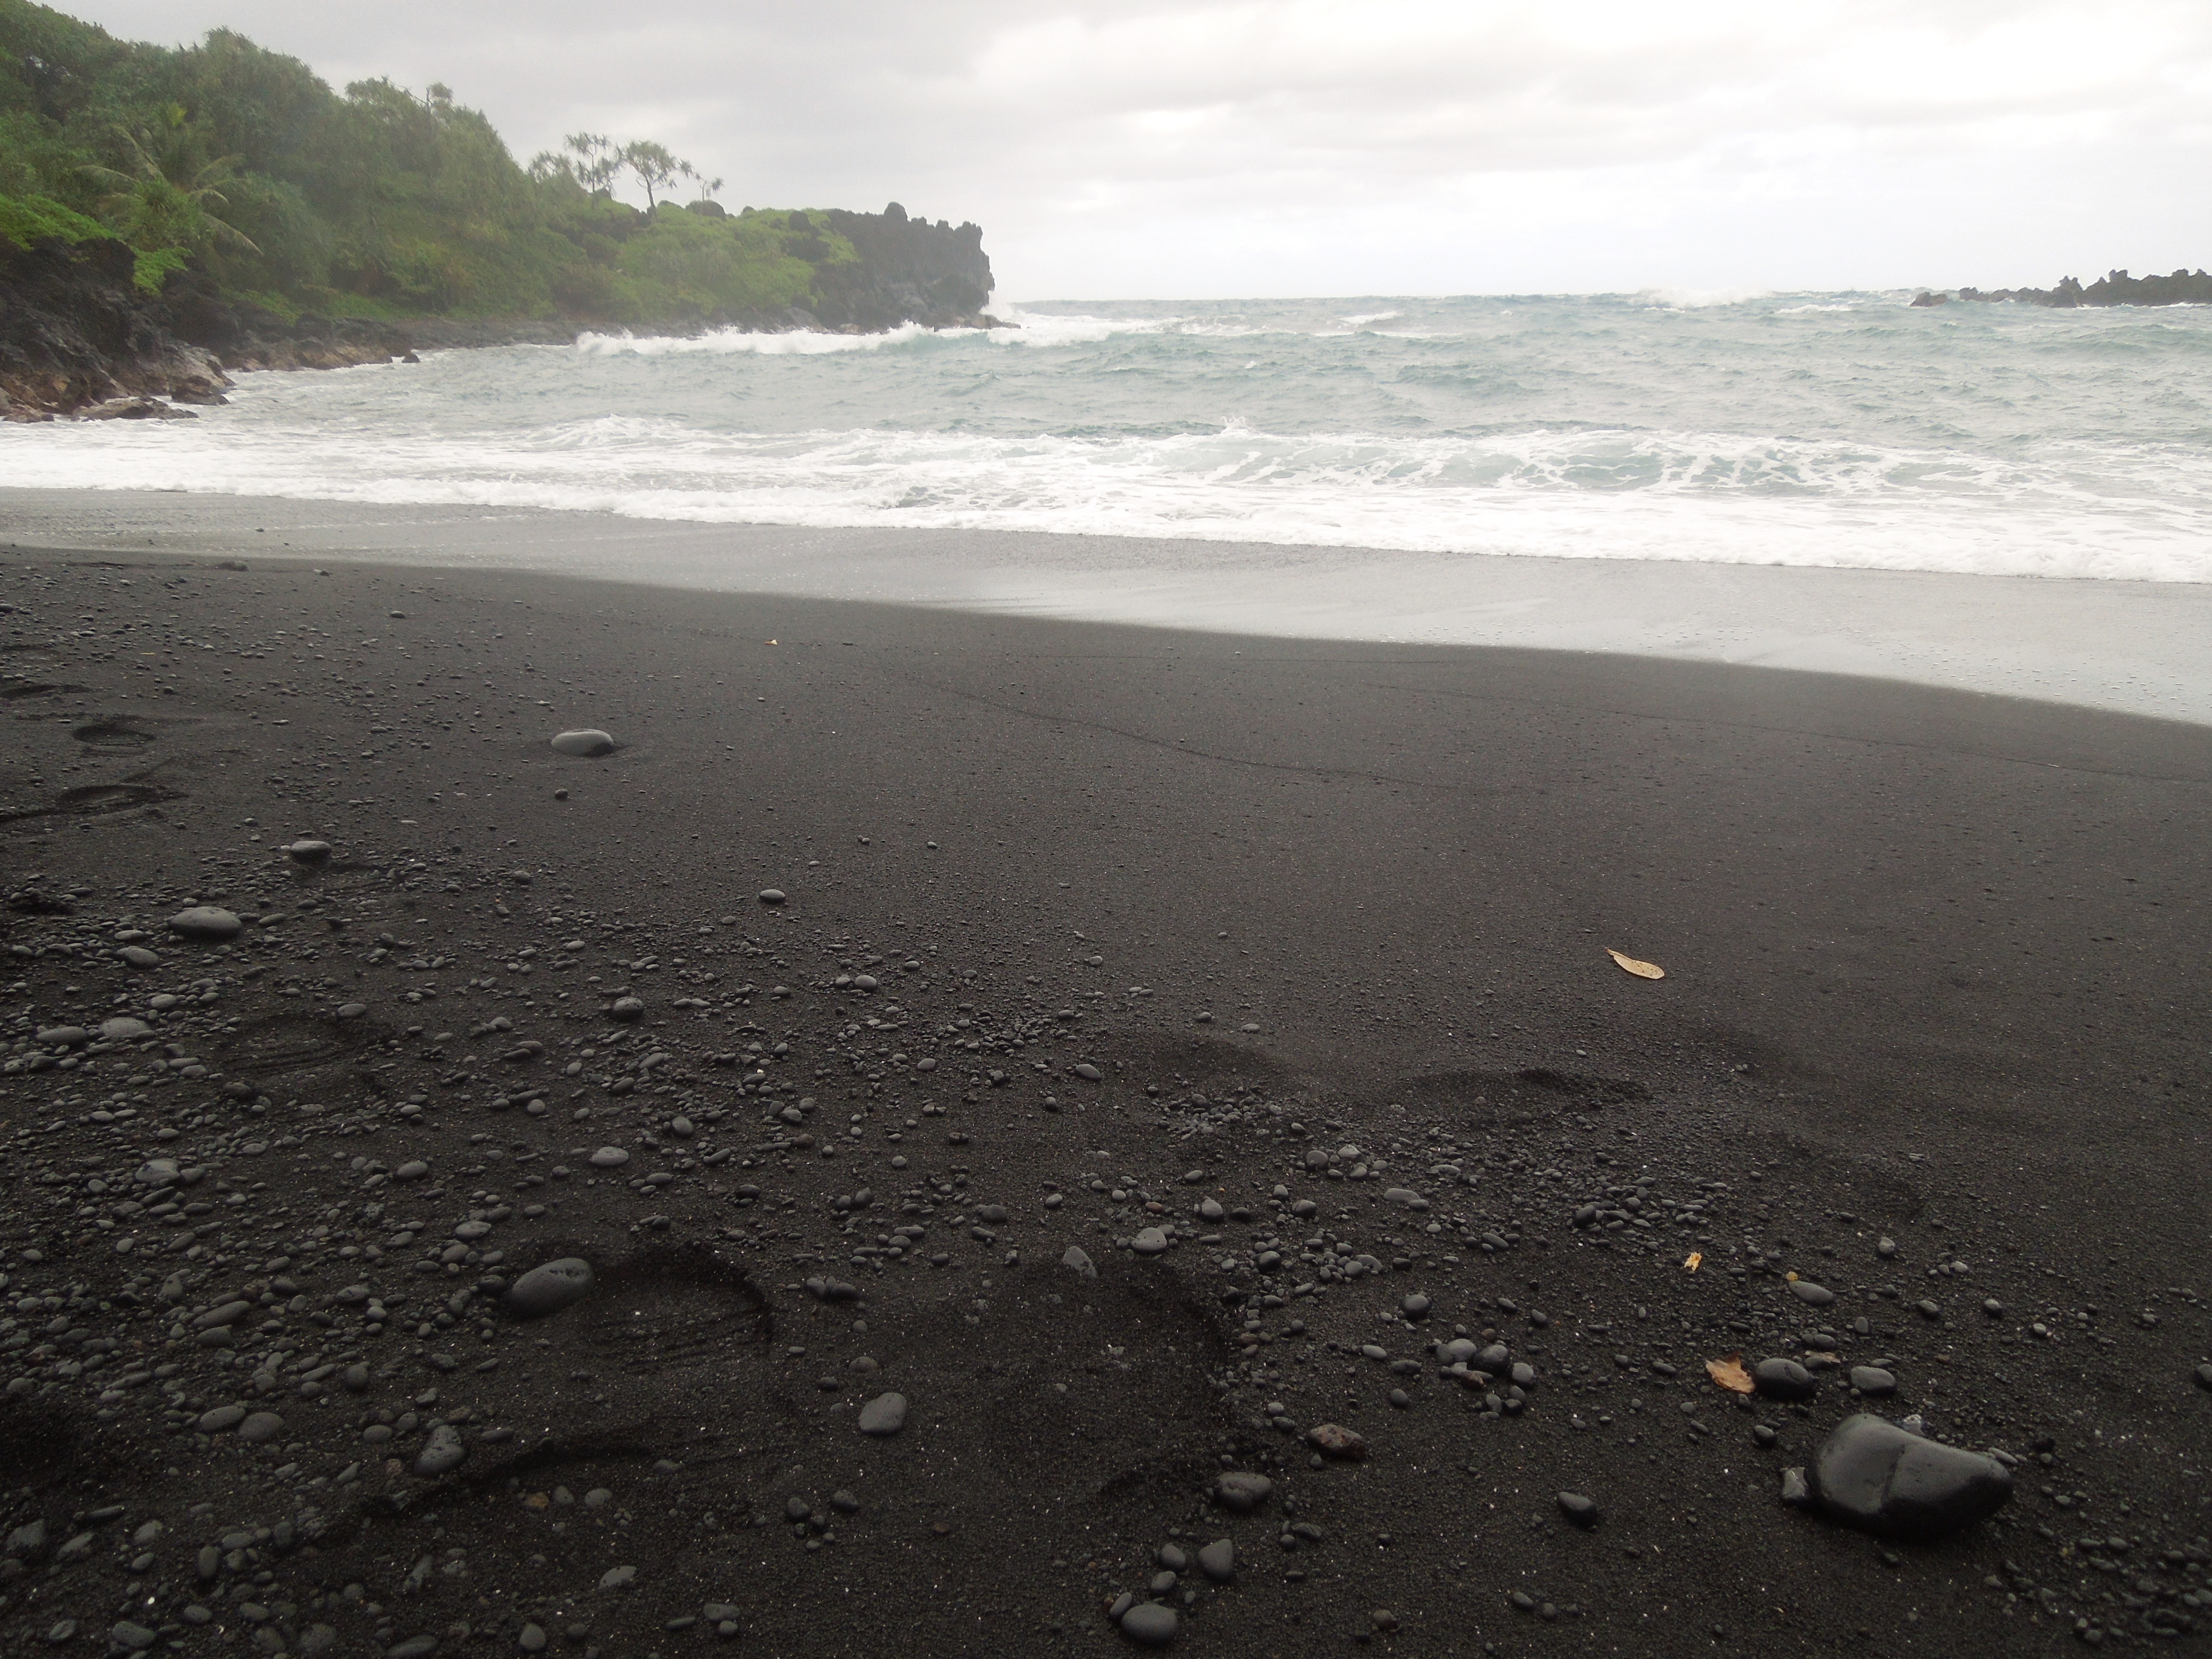 From There We Took A Turn Off The Main Trail To Follow Side Down Black Sand Beach